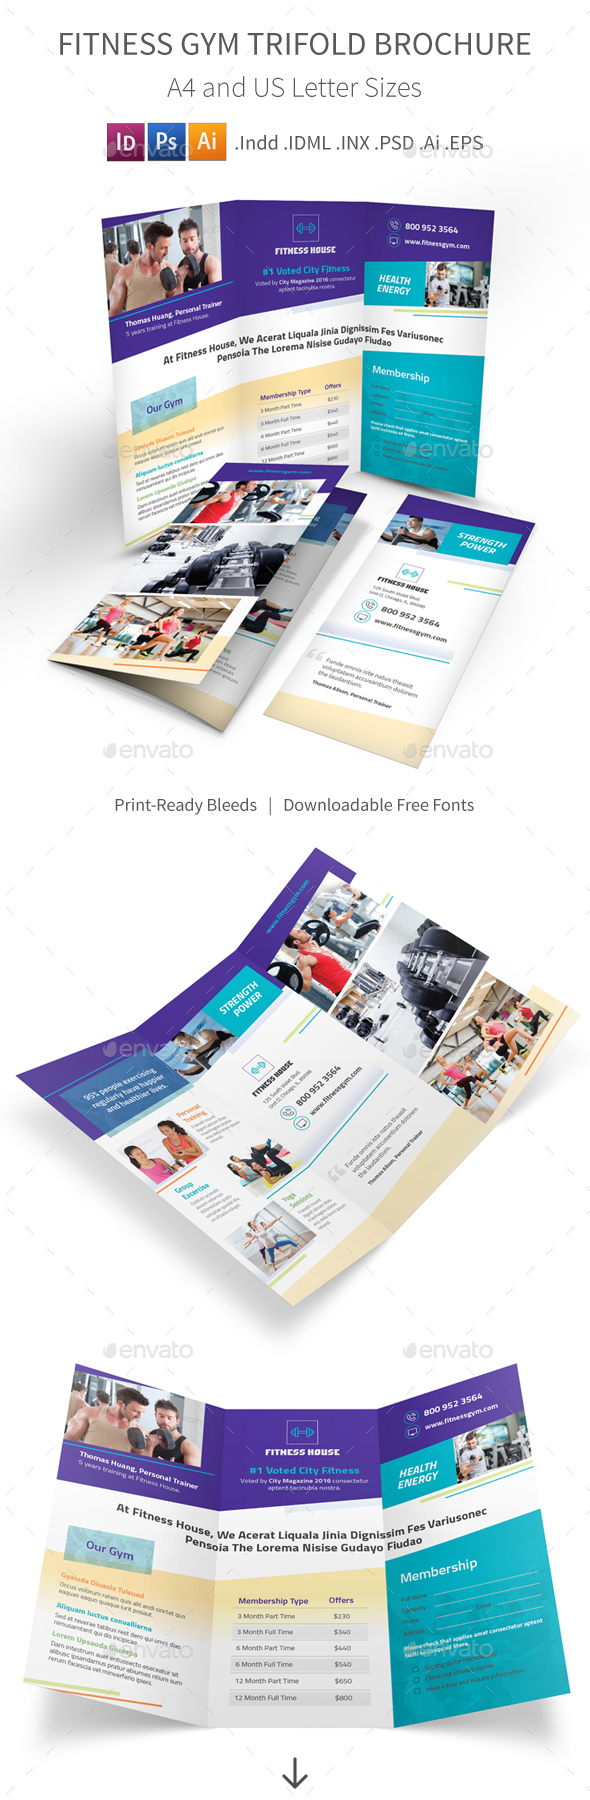 Fitness Gym Trifold Brochure 4